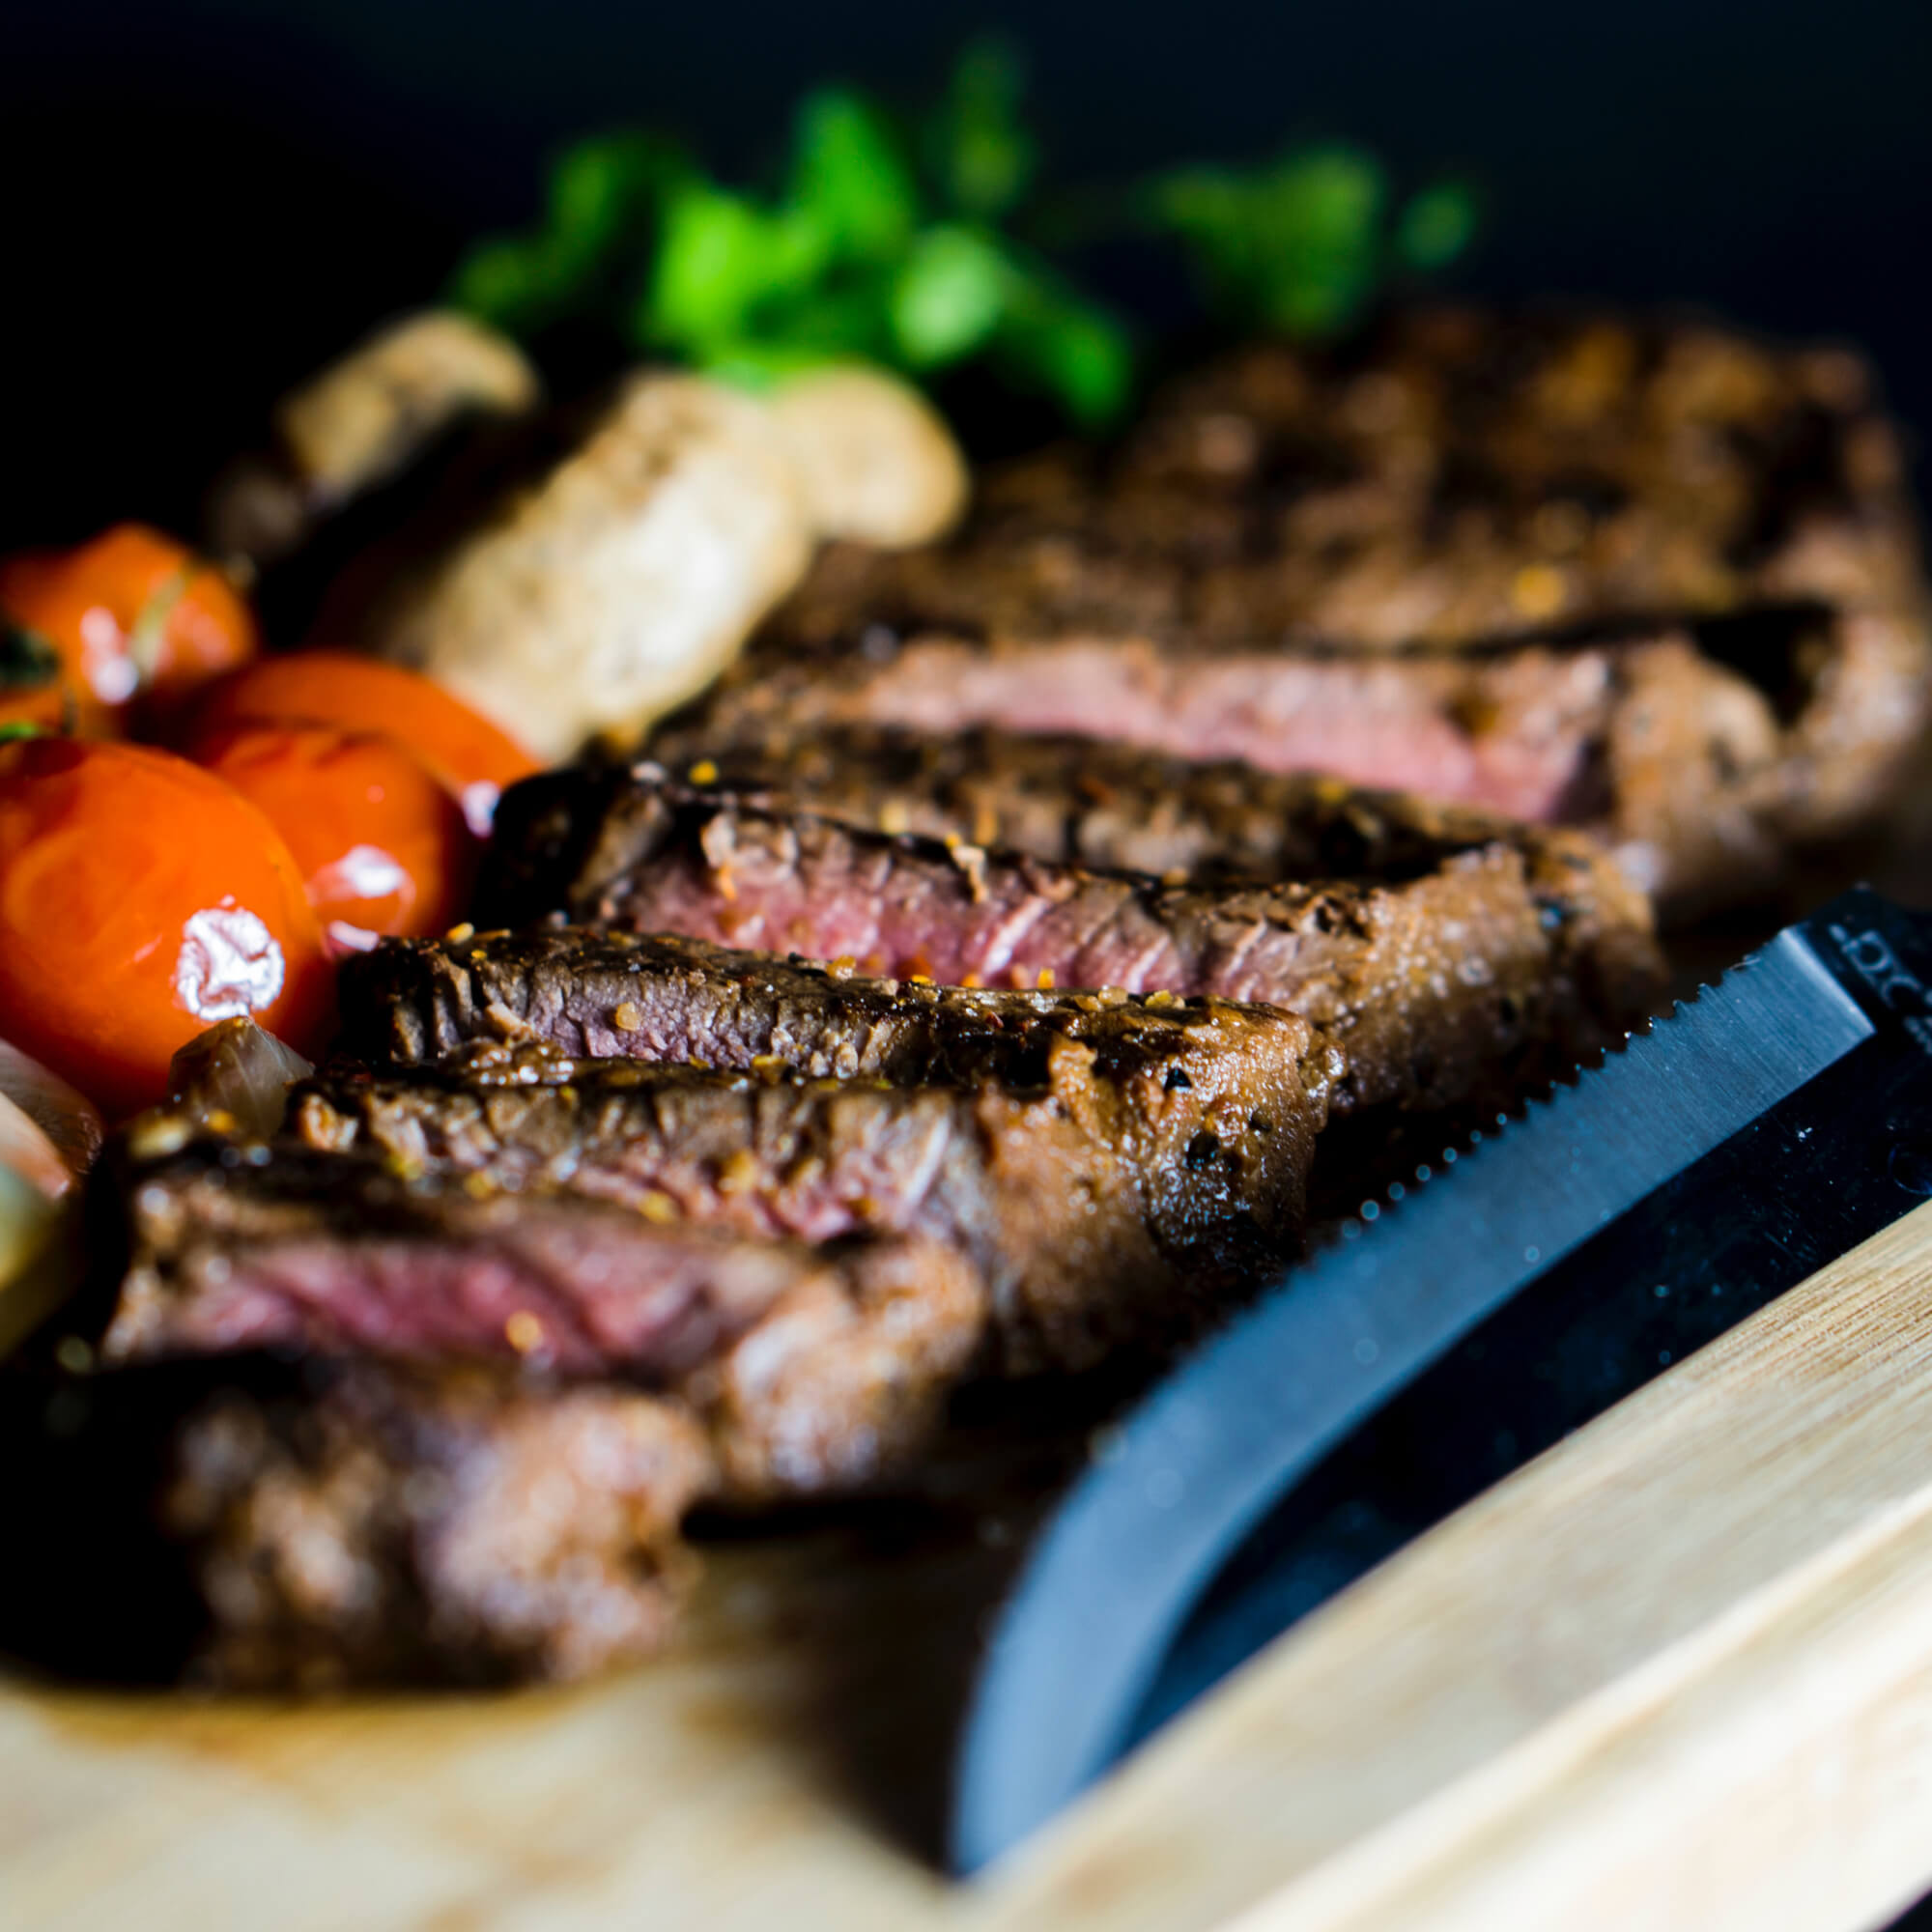 We ate super-expensive Wagyu steaks so you don't have to